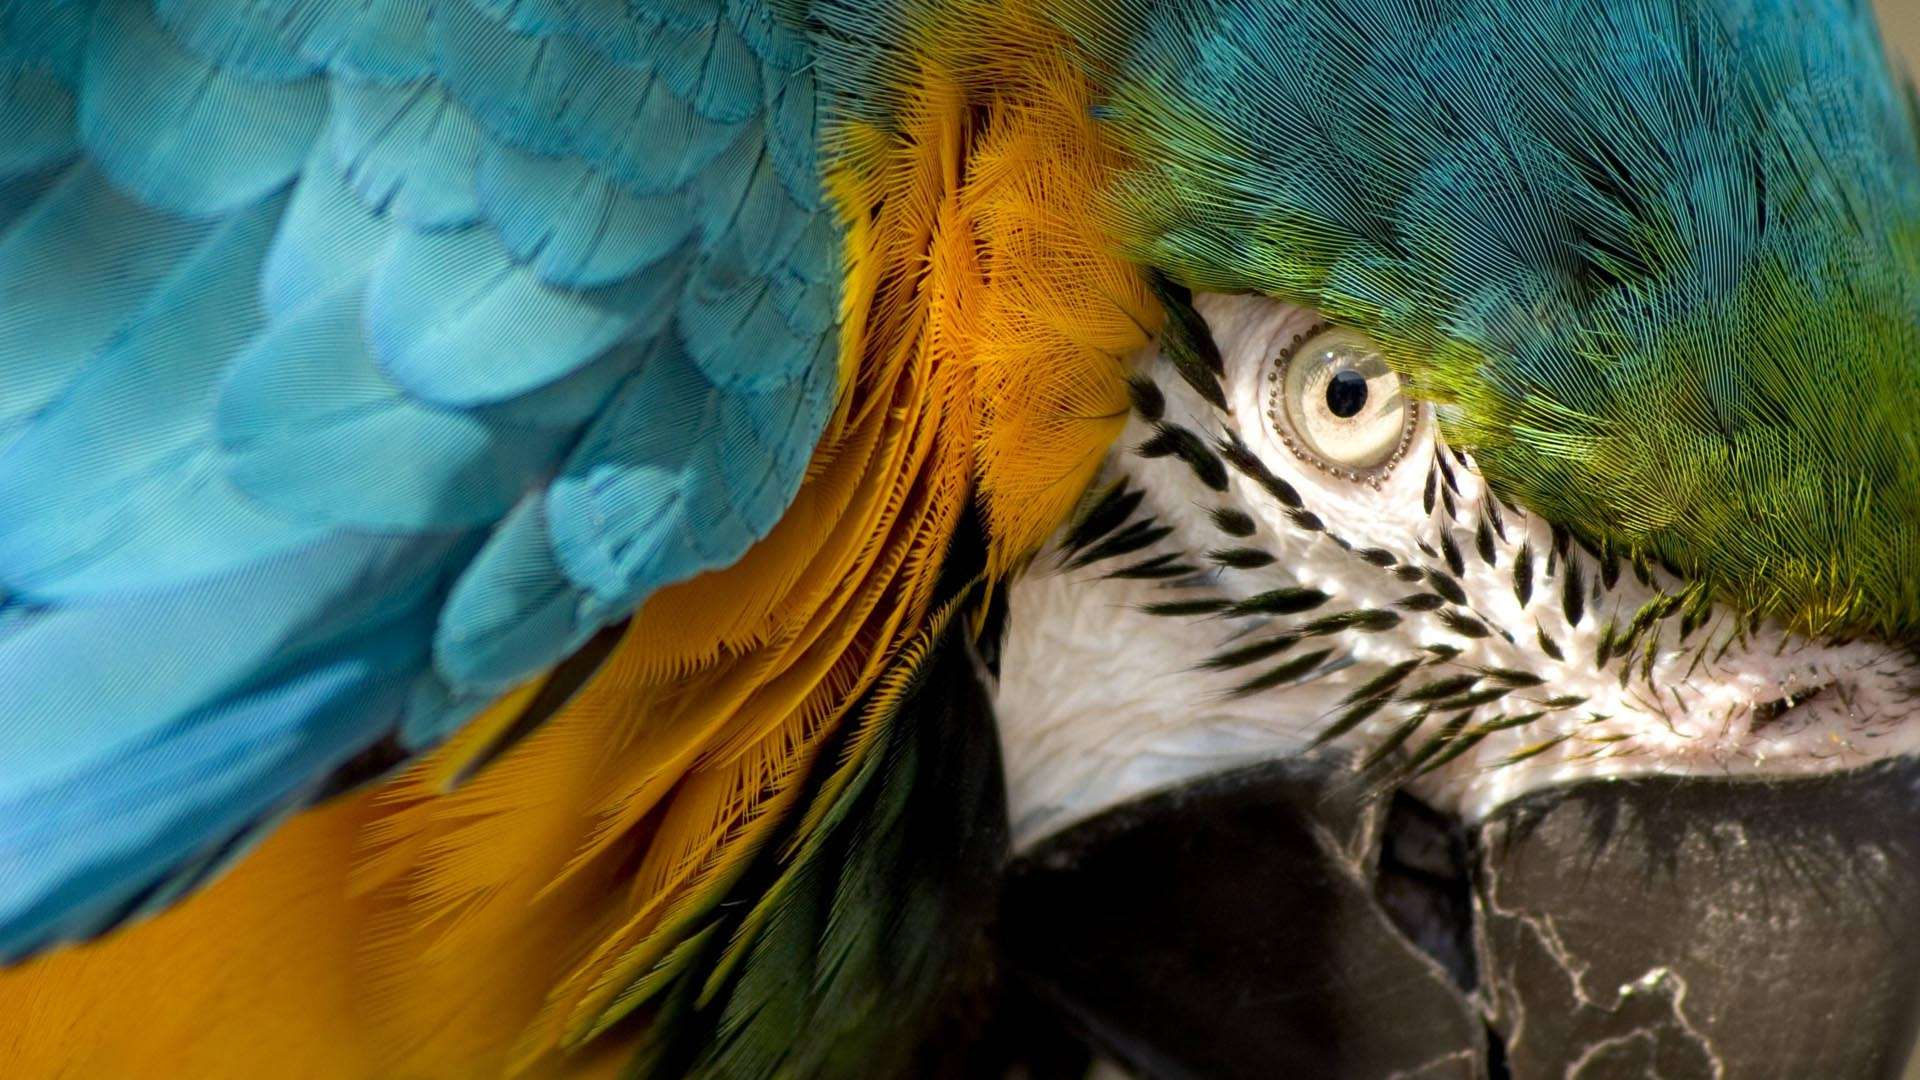 macaw images